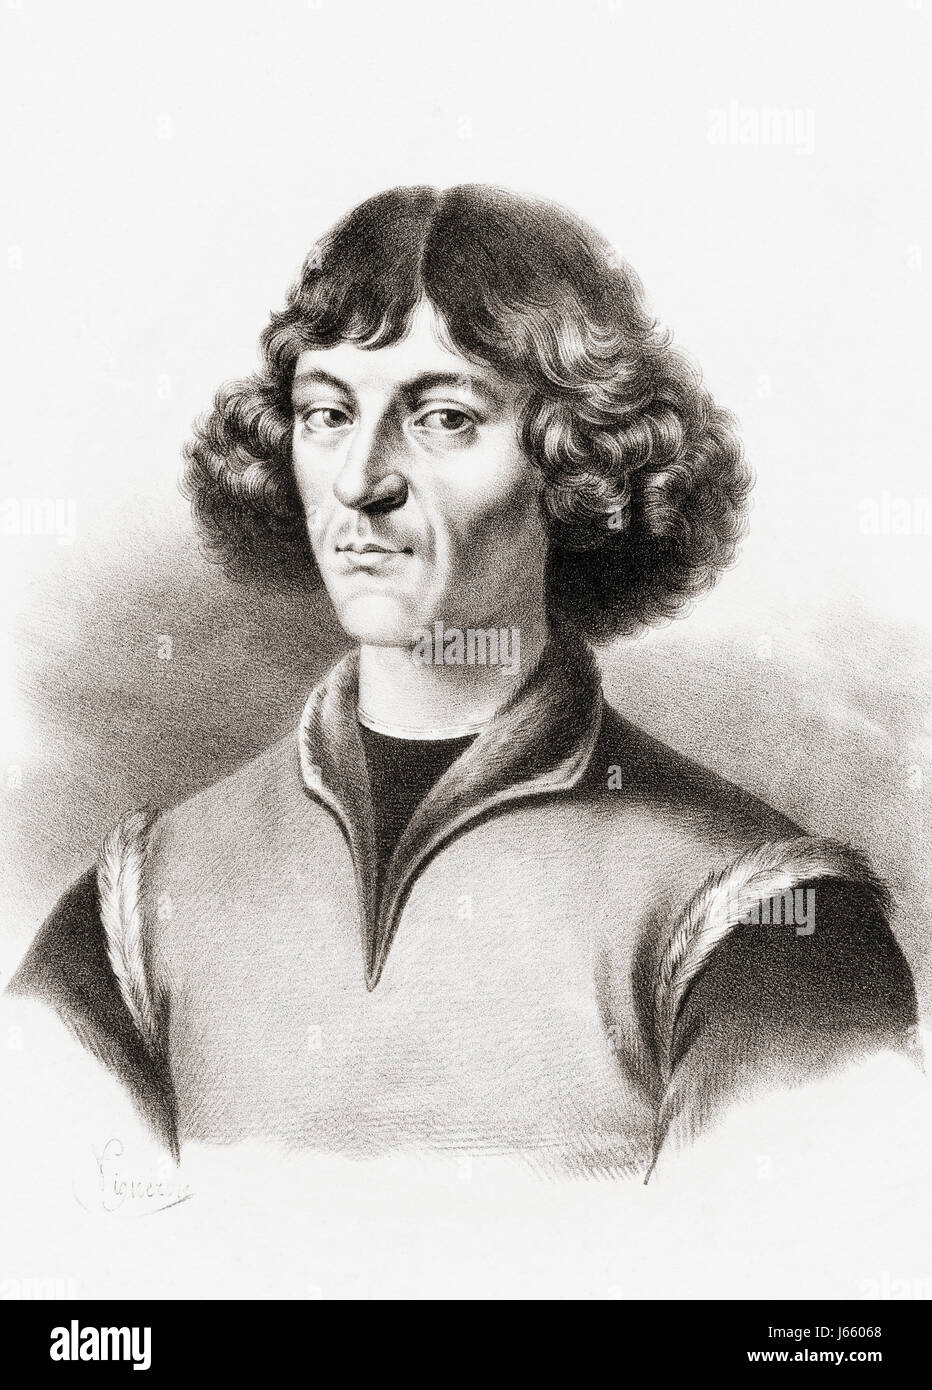 nicholas copernicus founder astronomy Nicolas copernicus (1473-1543) is said to be the founder of modern astronomy he is famous for his theory which asserted that the earth rotated on its axis once daily and traveled around the sun.